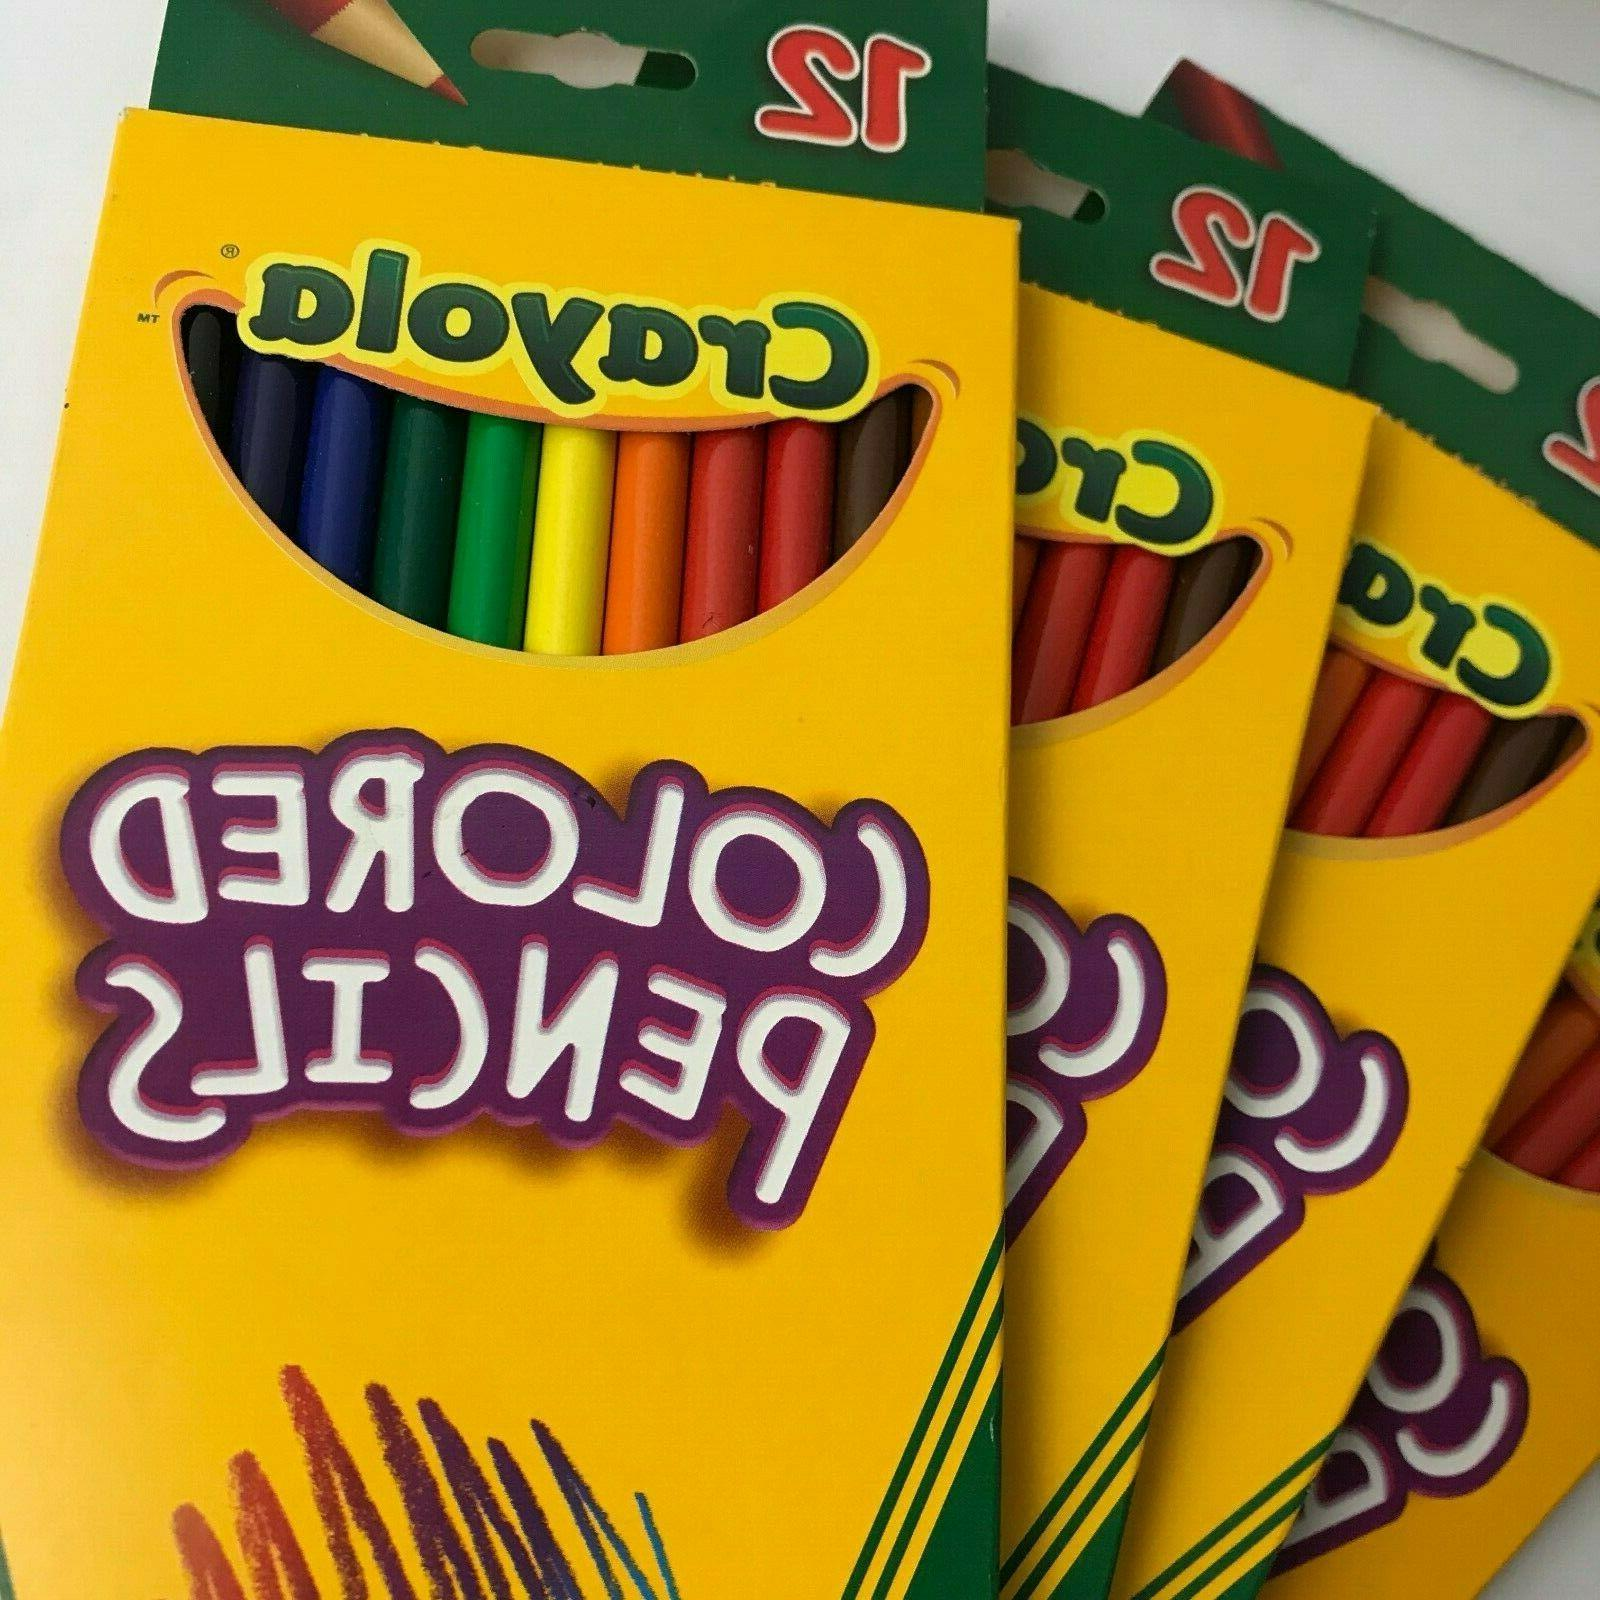 4 Crayola Pre-Sharpened Colored Bold 4